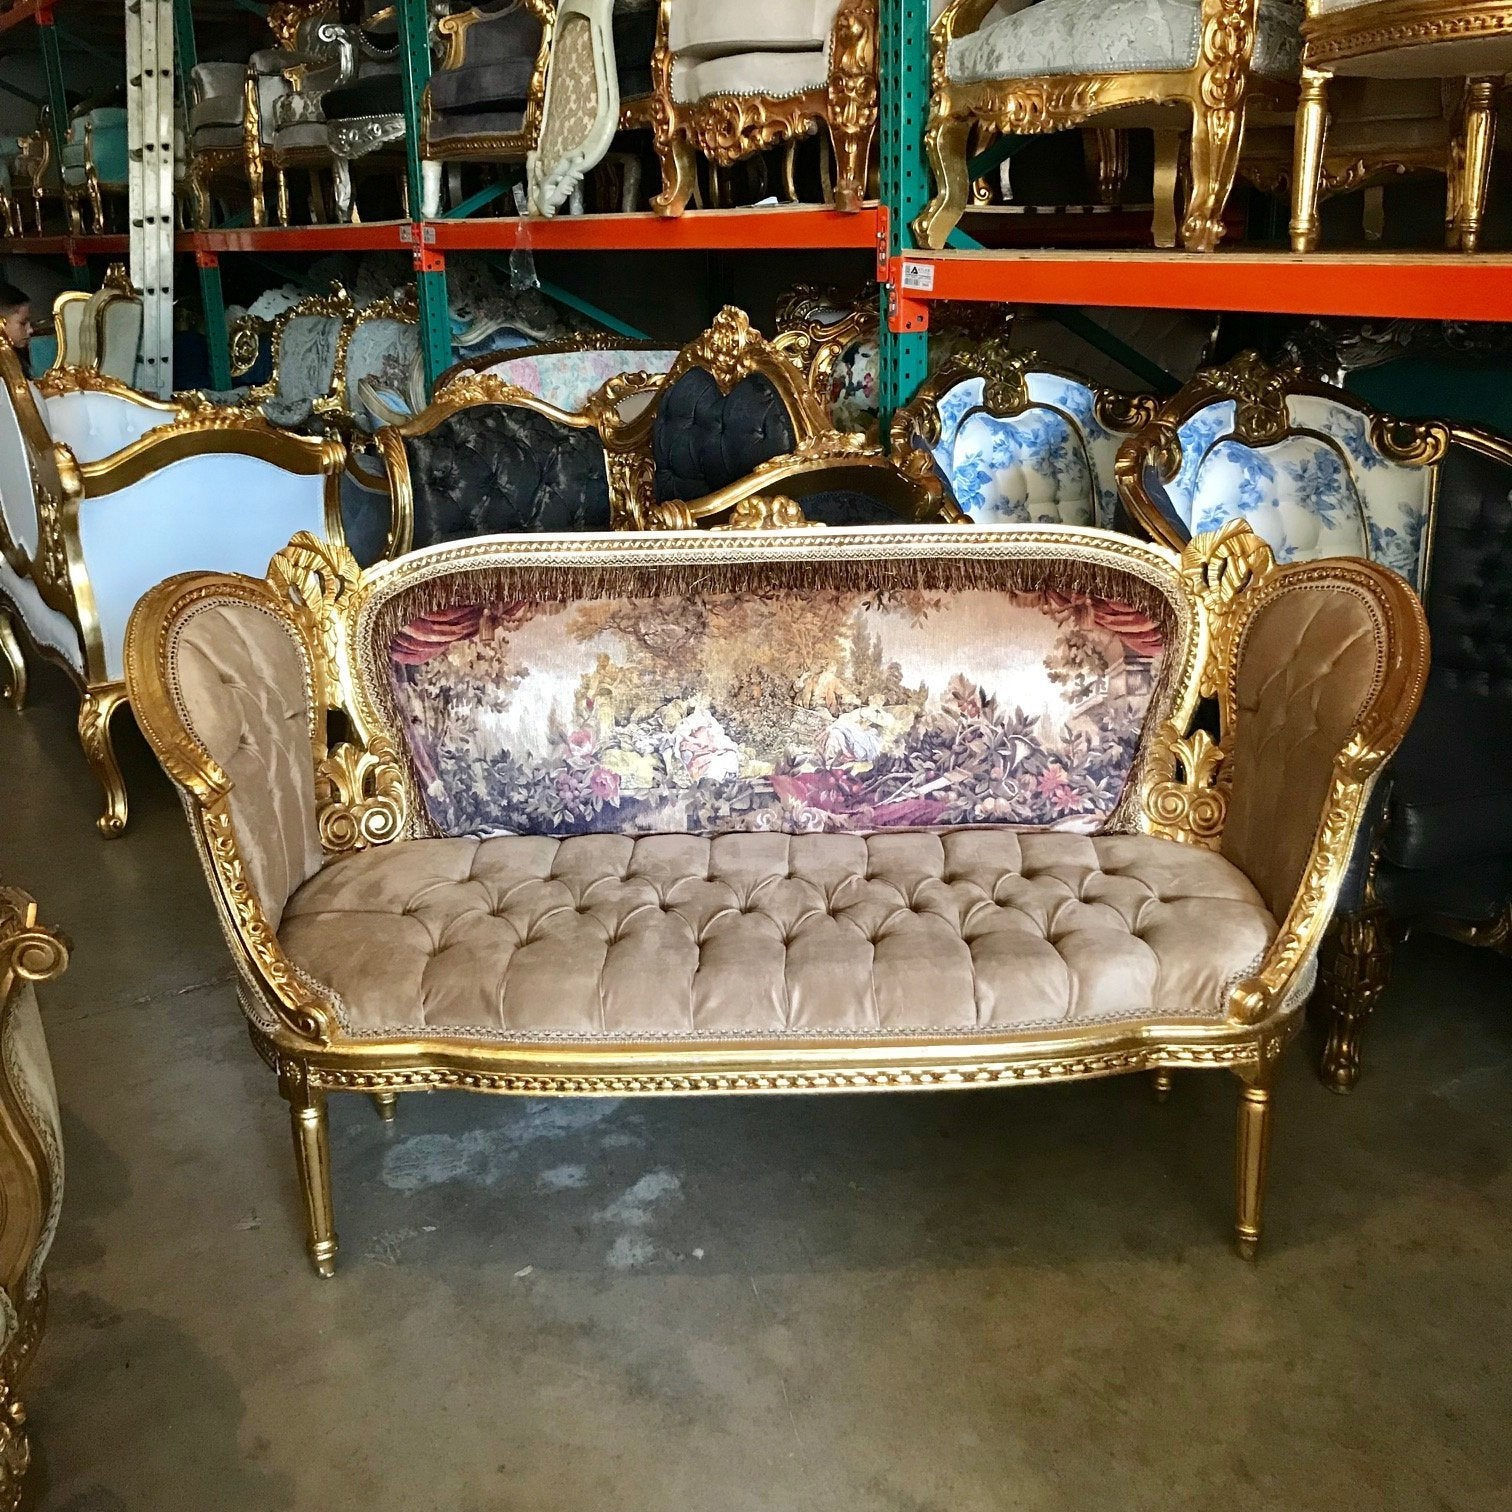 The Throne Chair Company